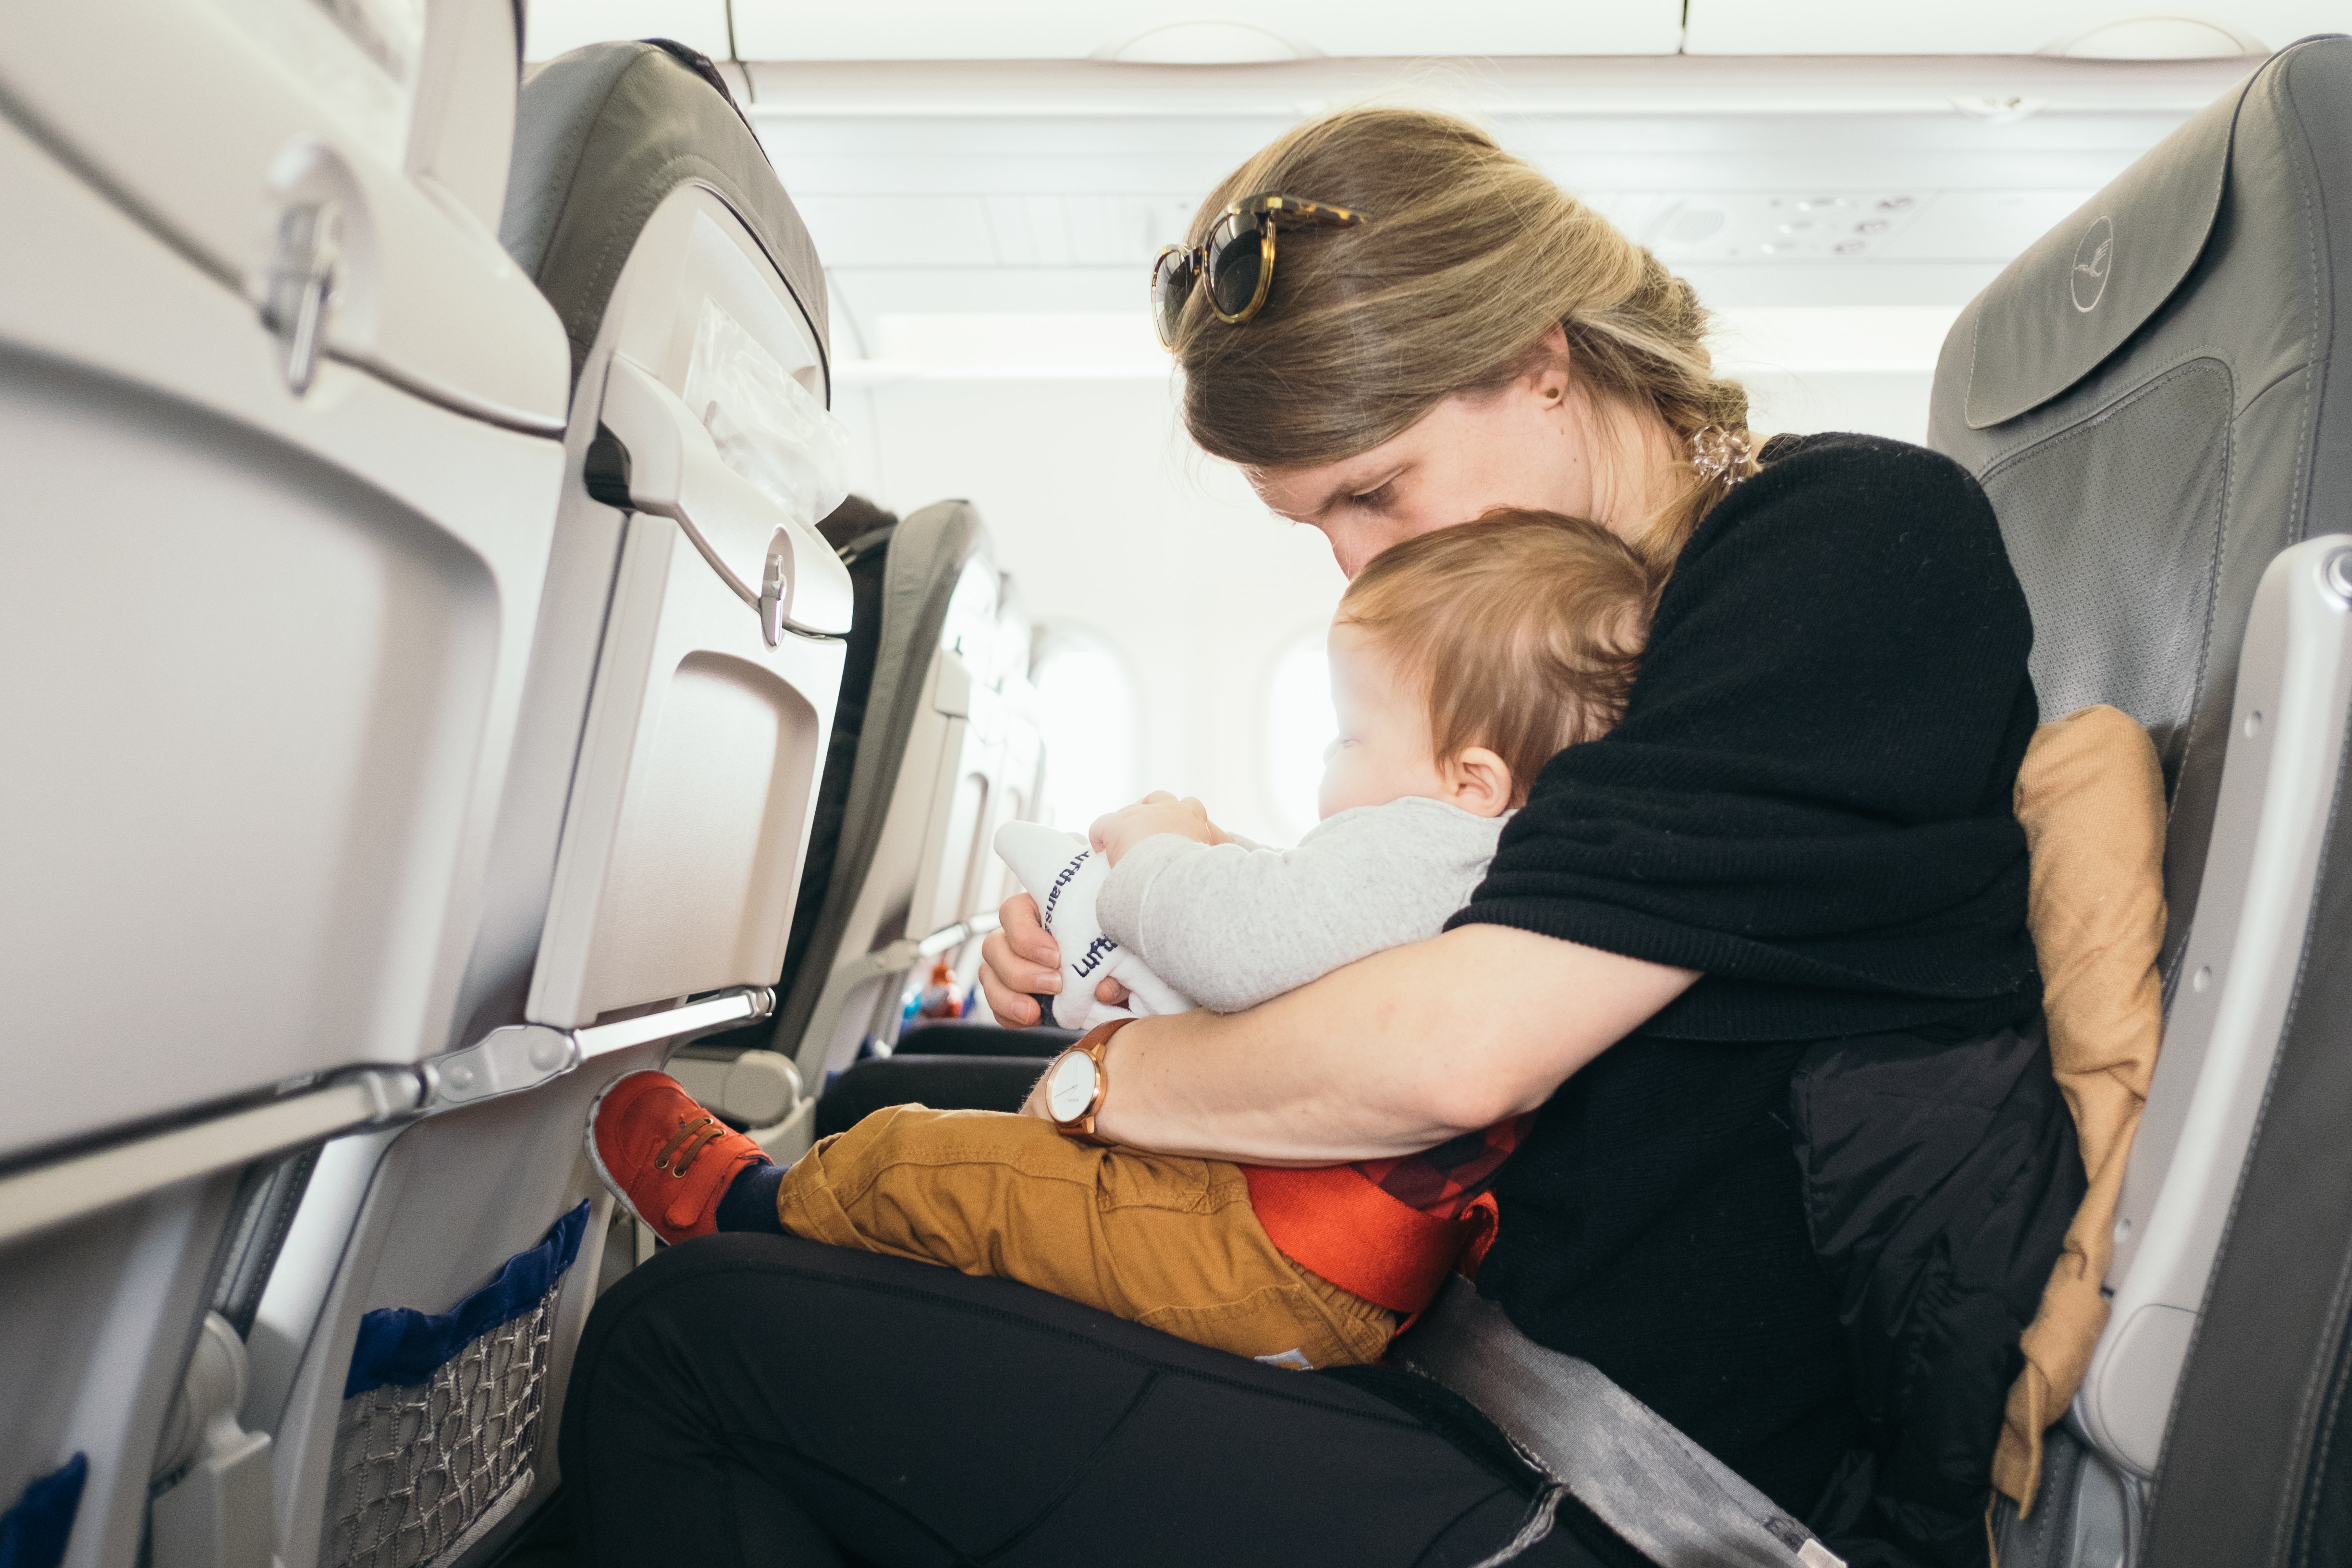 Woman and child on plane